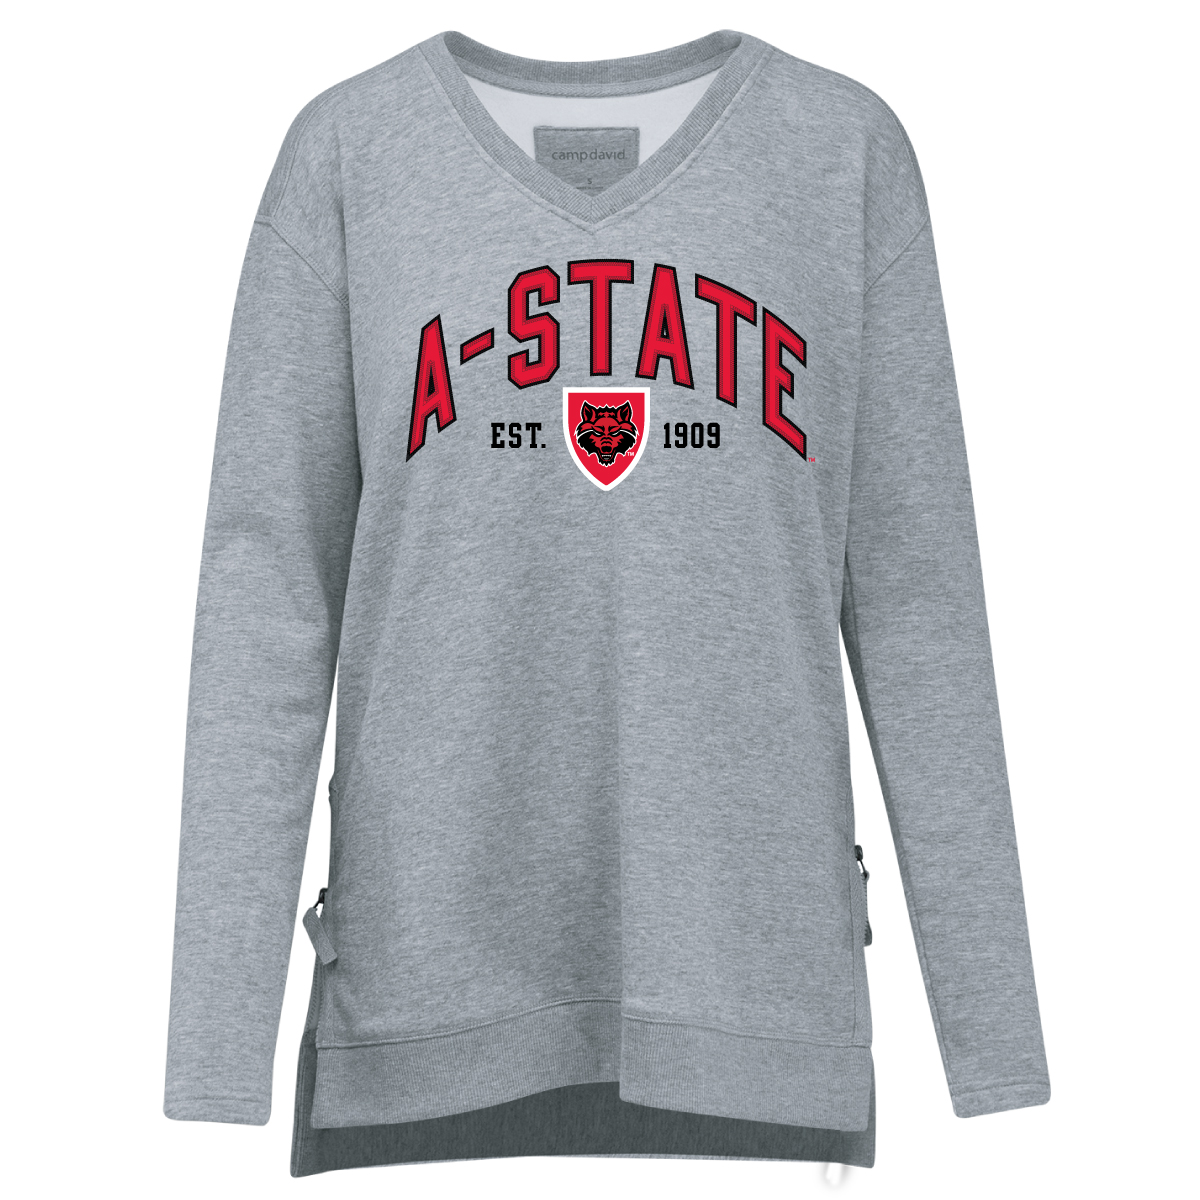 Arkansas State Eden V-Neck Sweater